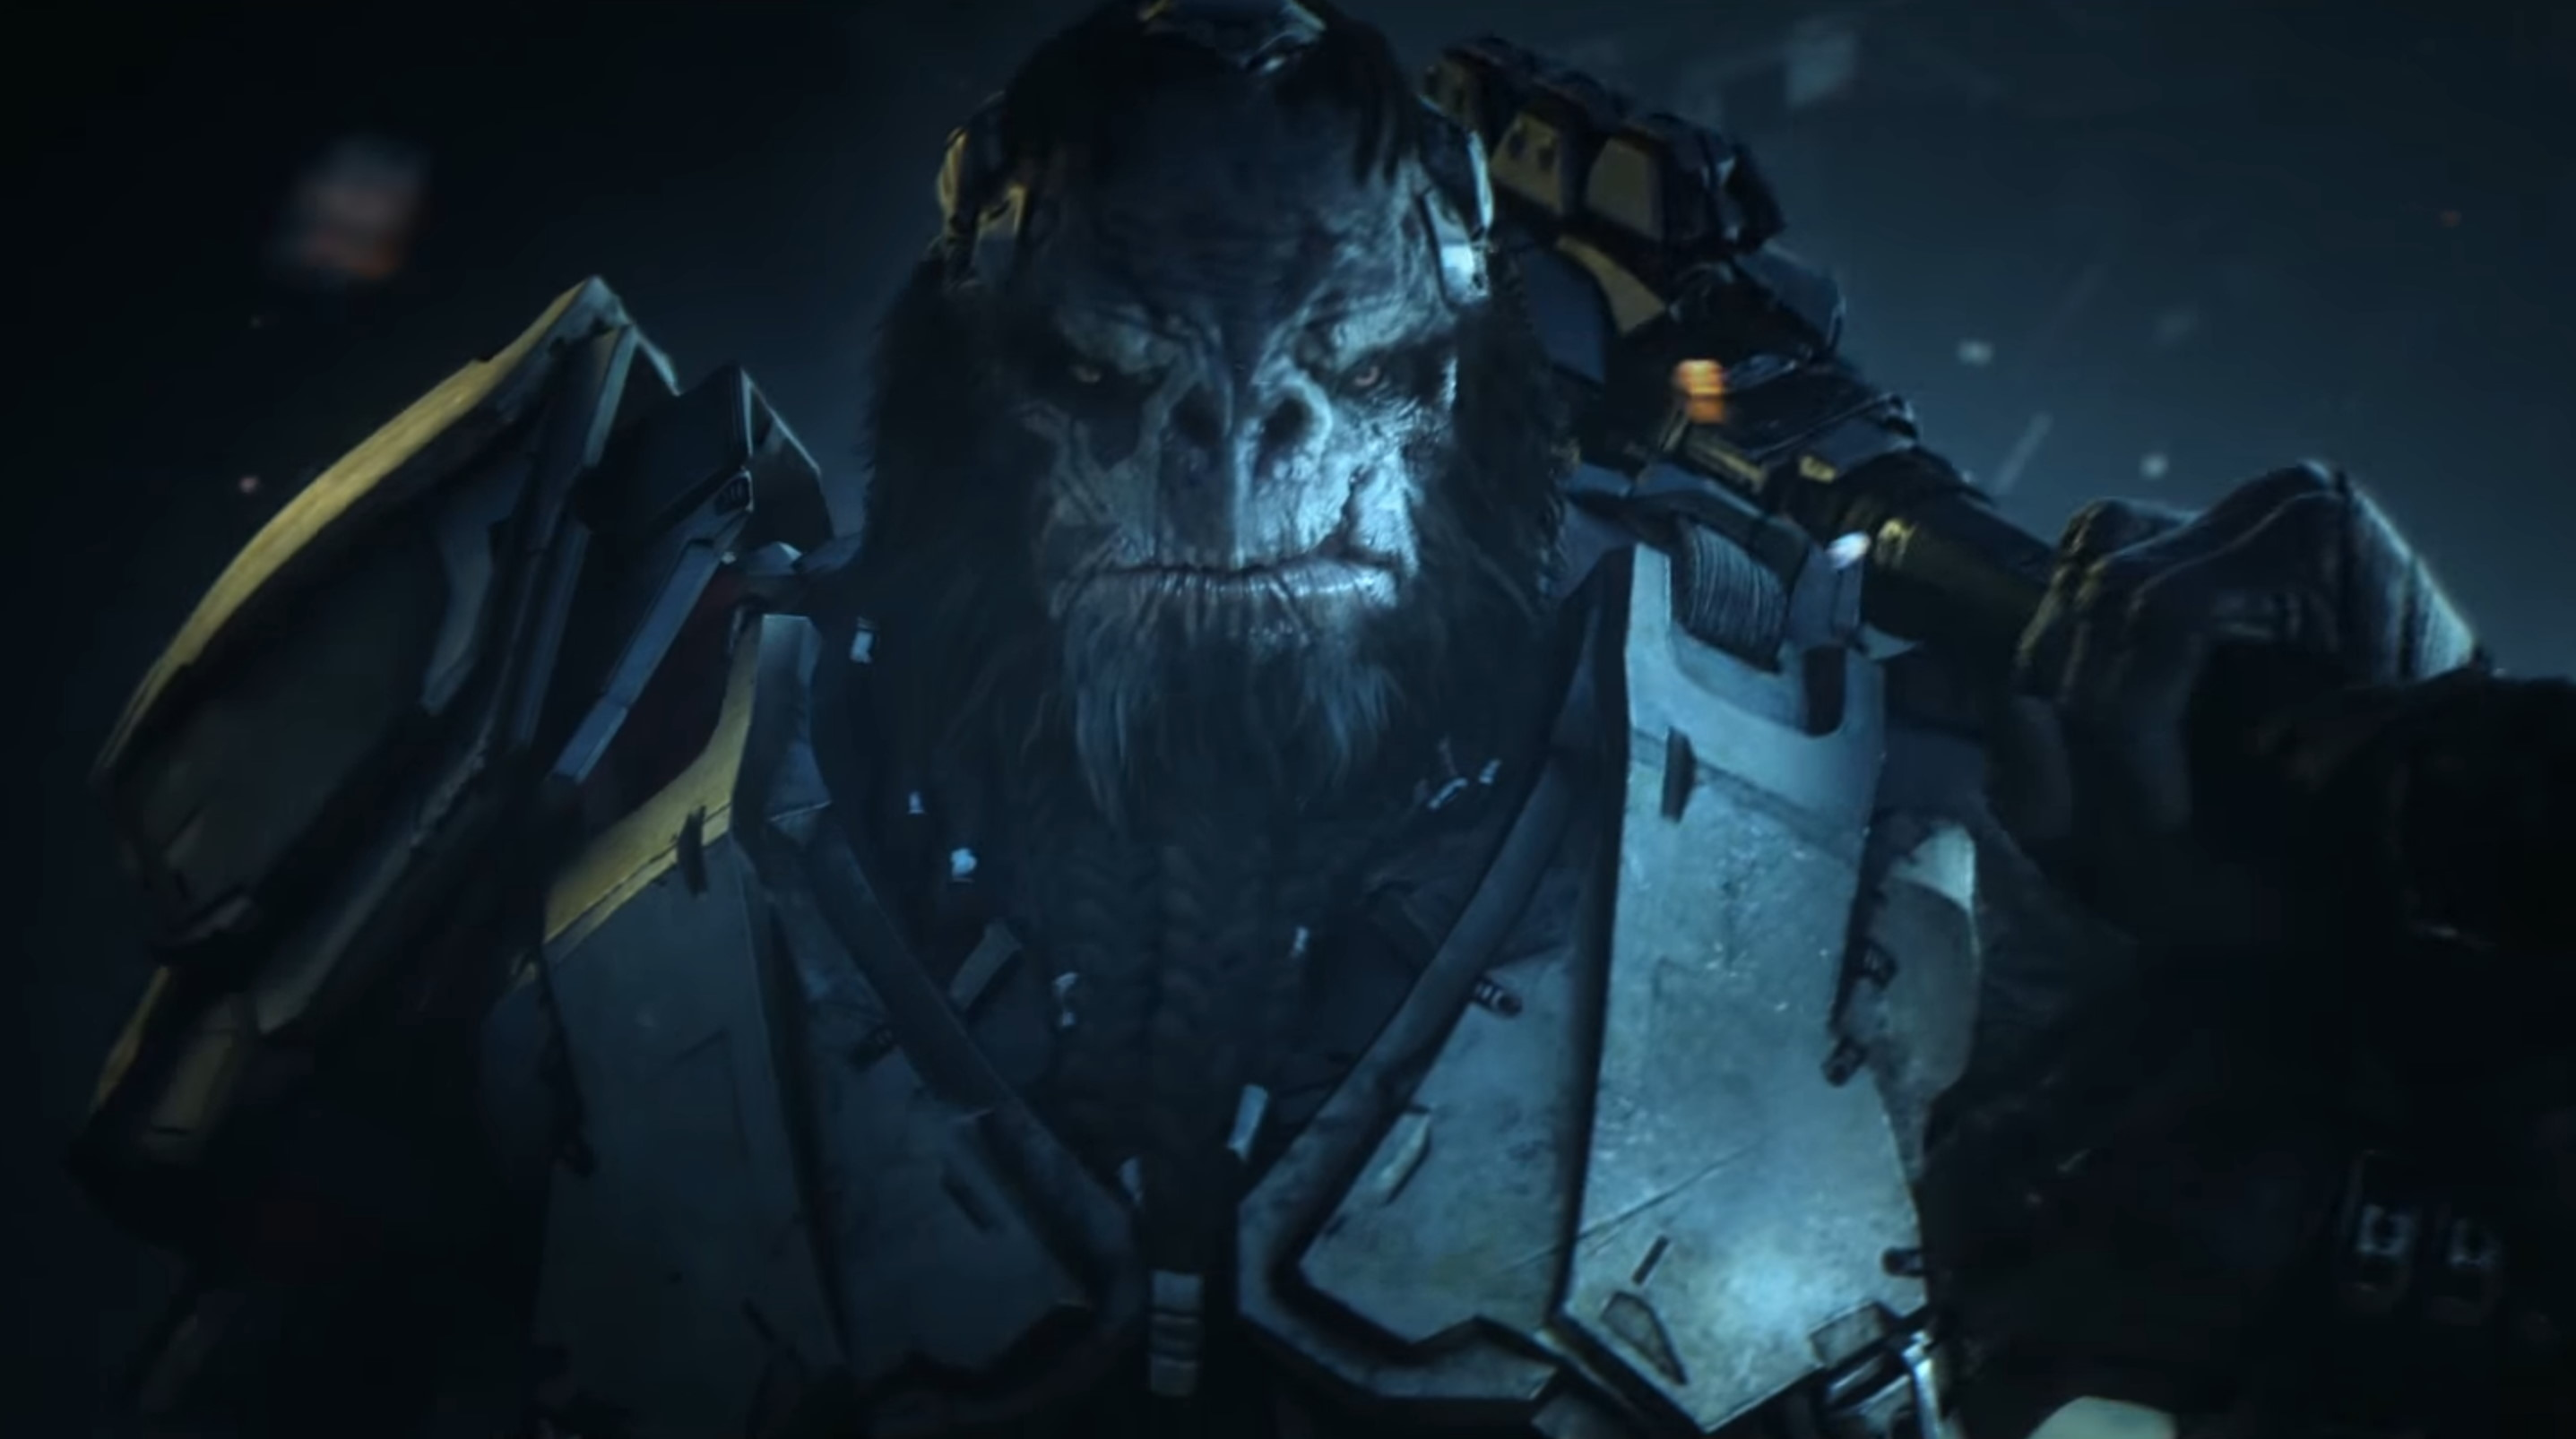 343 Industries says a return to Halo Wars 2 isn't going to happen